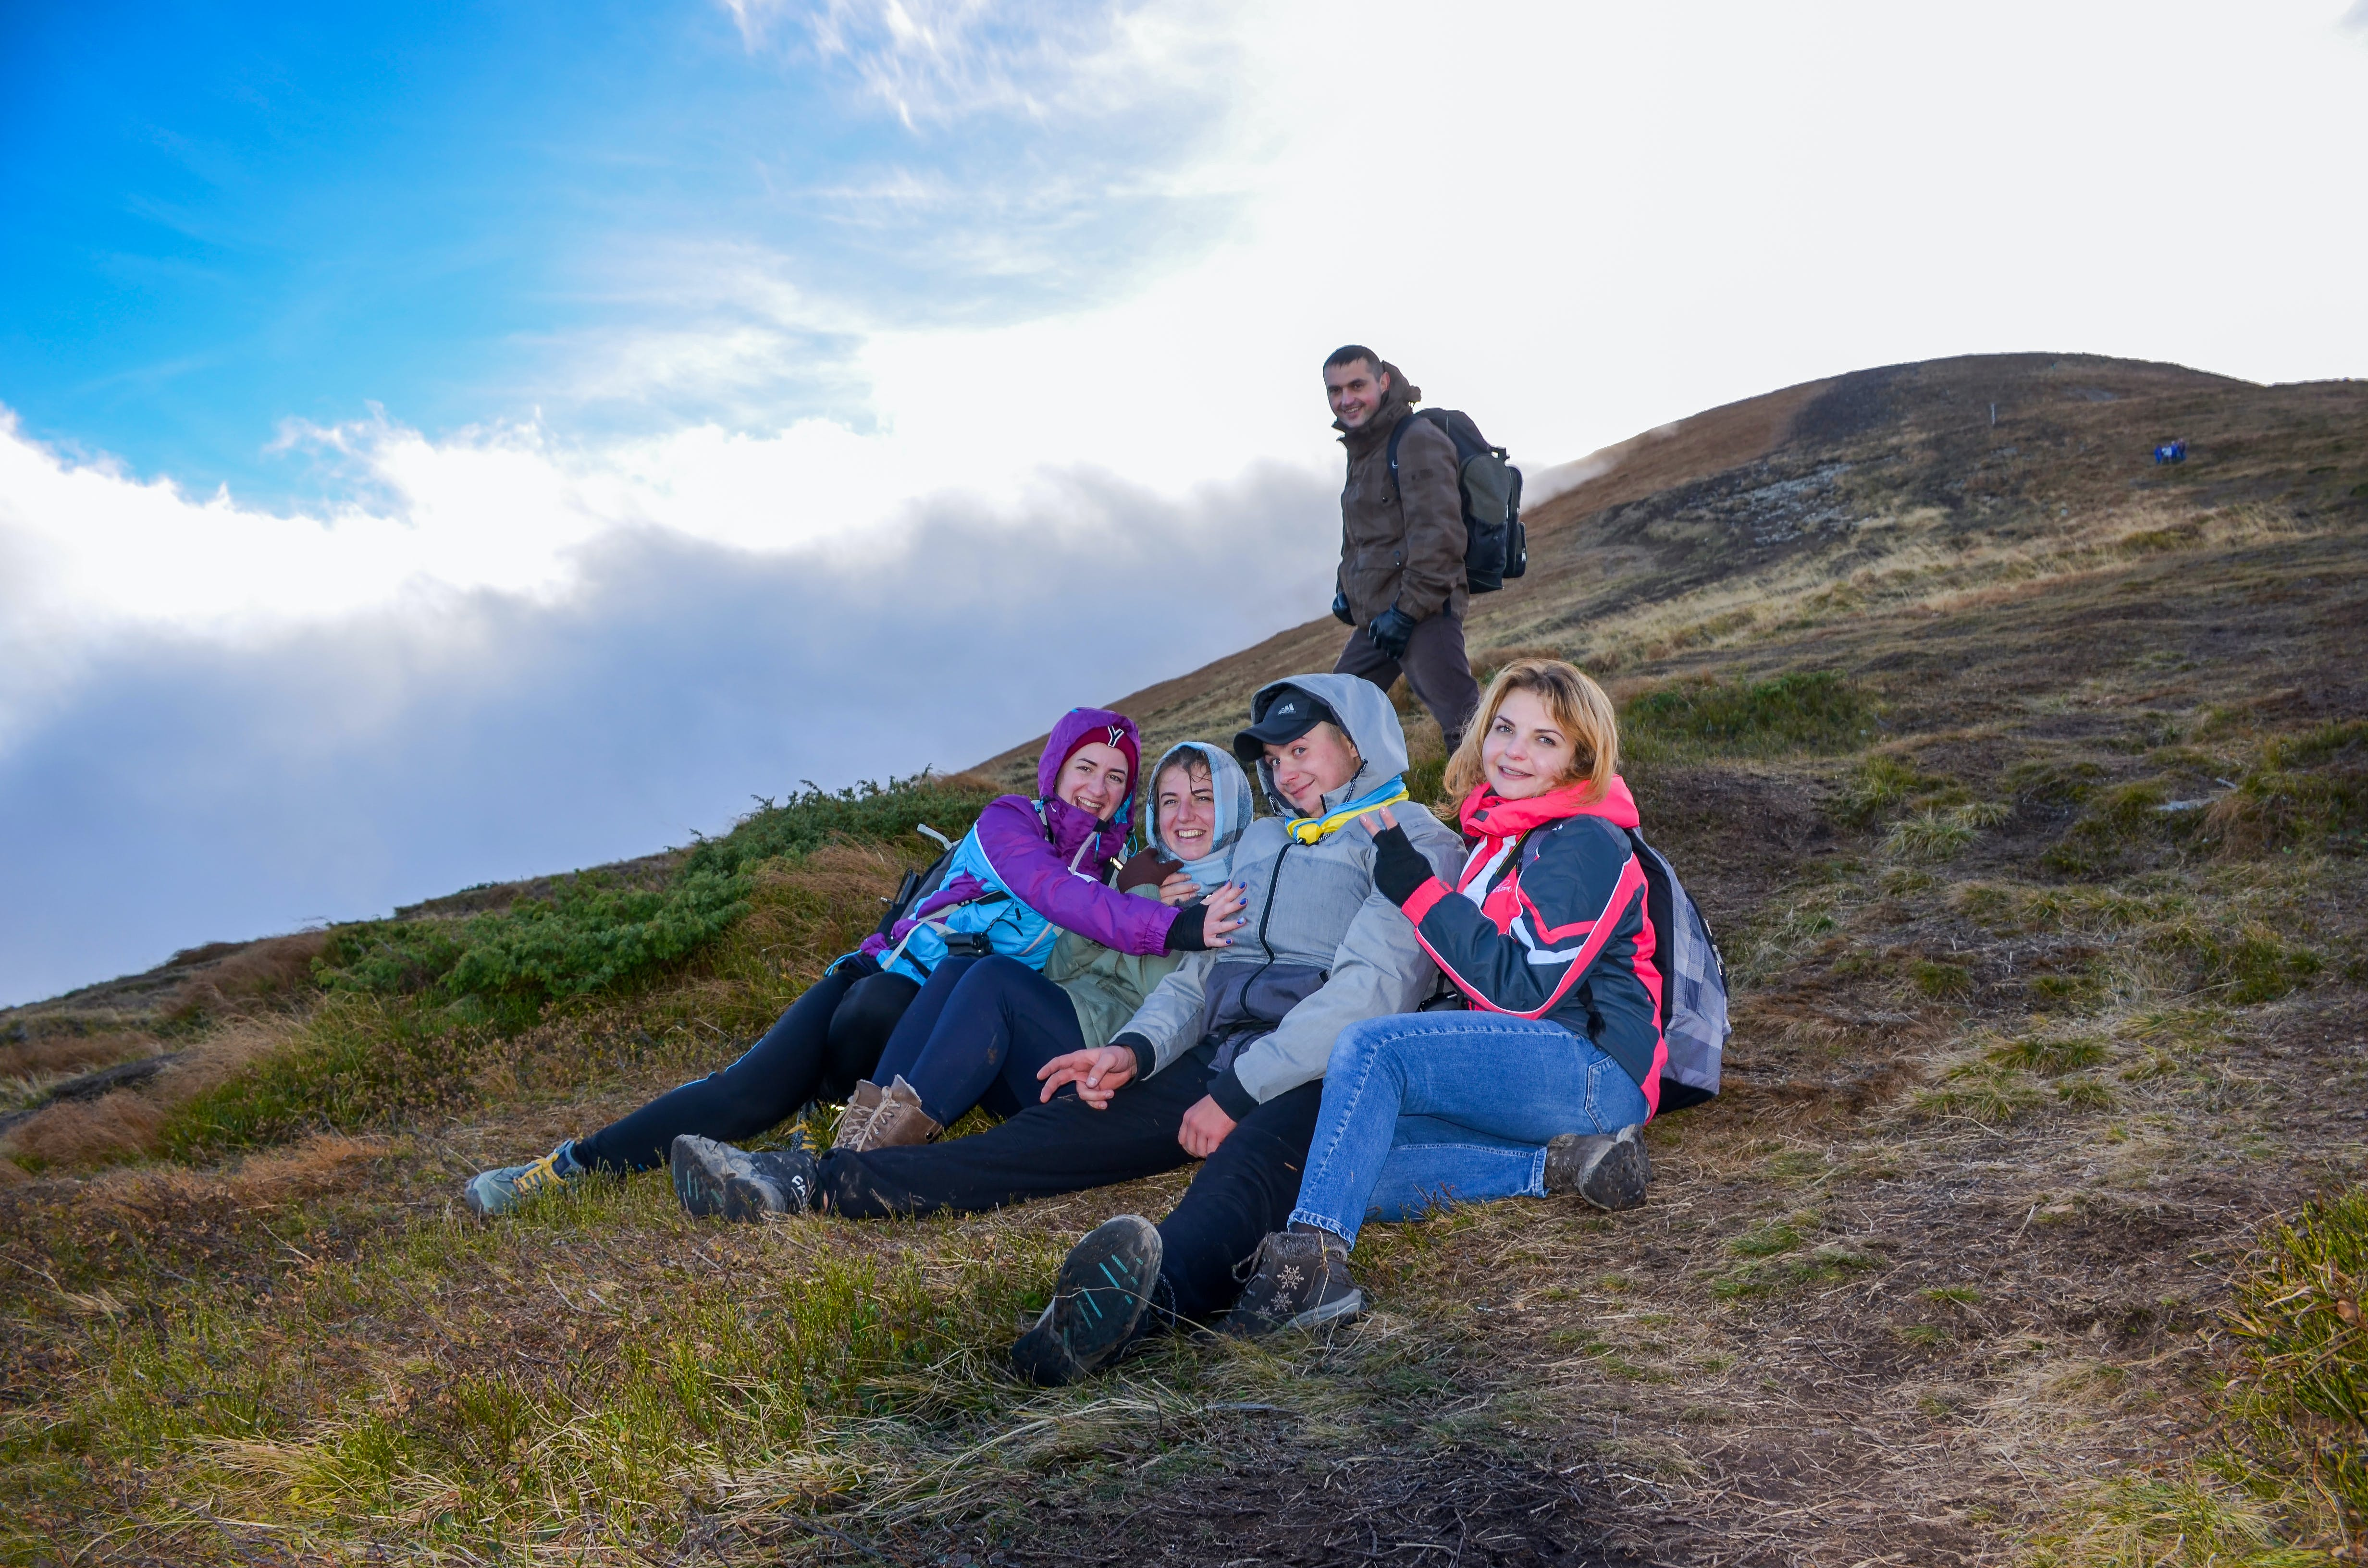 Group of People Hiking Mountain